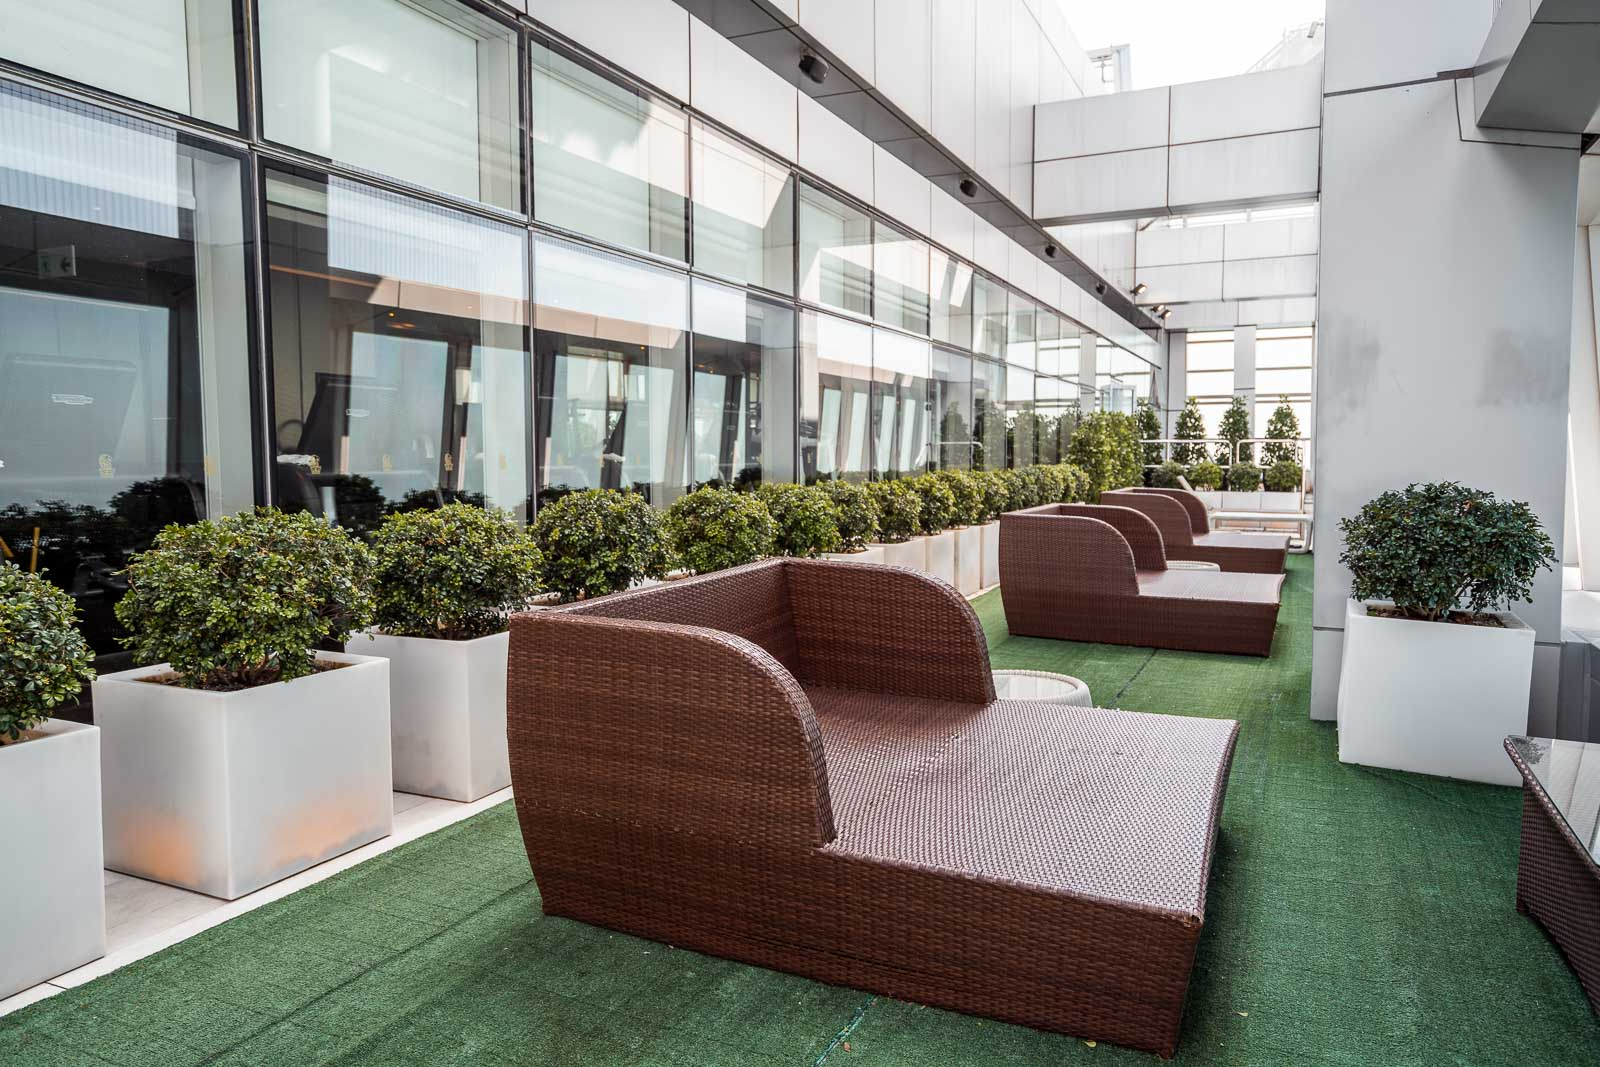 Outdoor terrace on the 118th floor with chairs and green plants